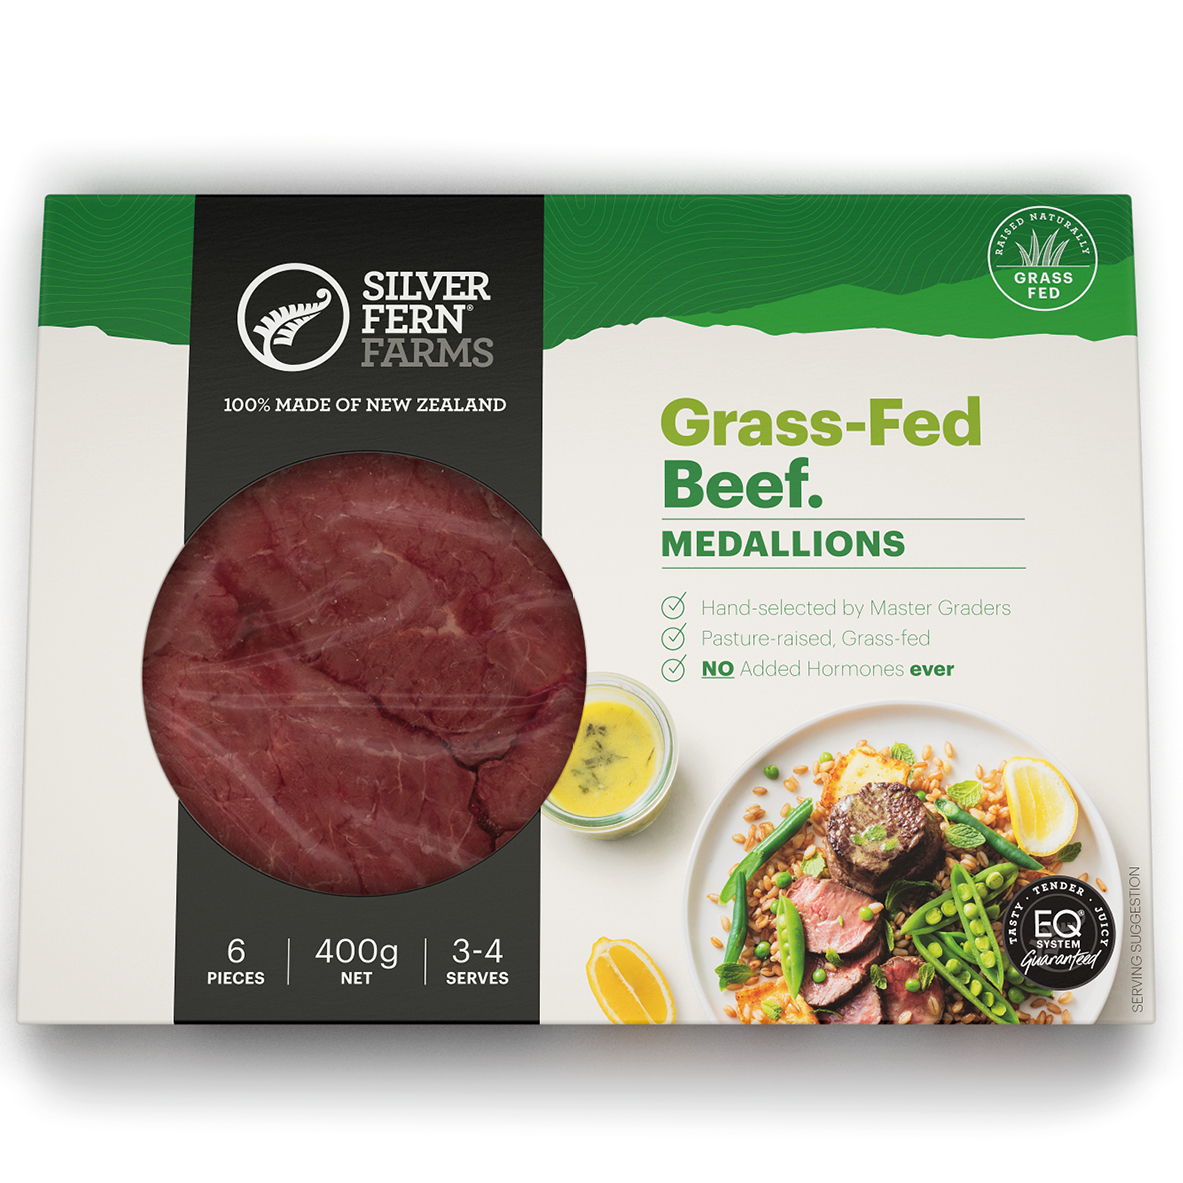 Image of Beef Medallions in a packet